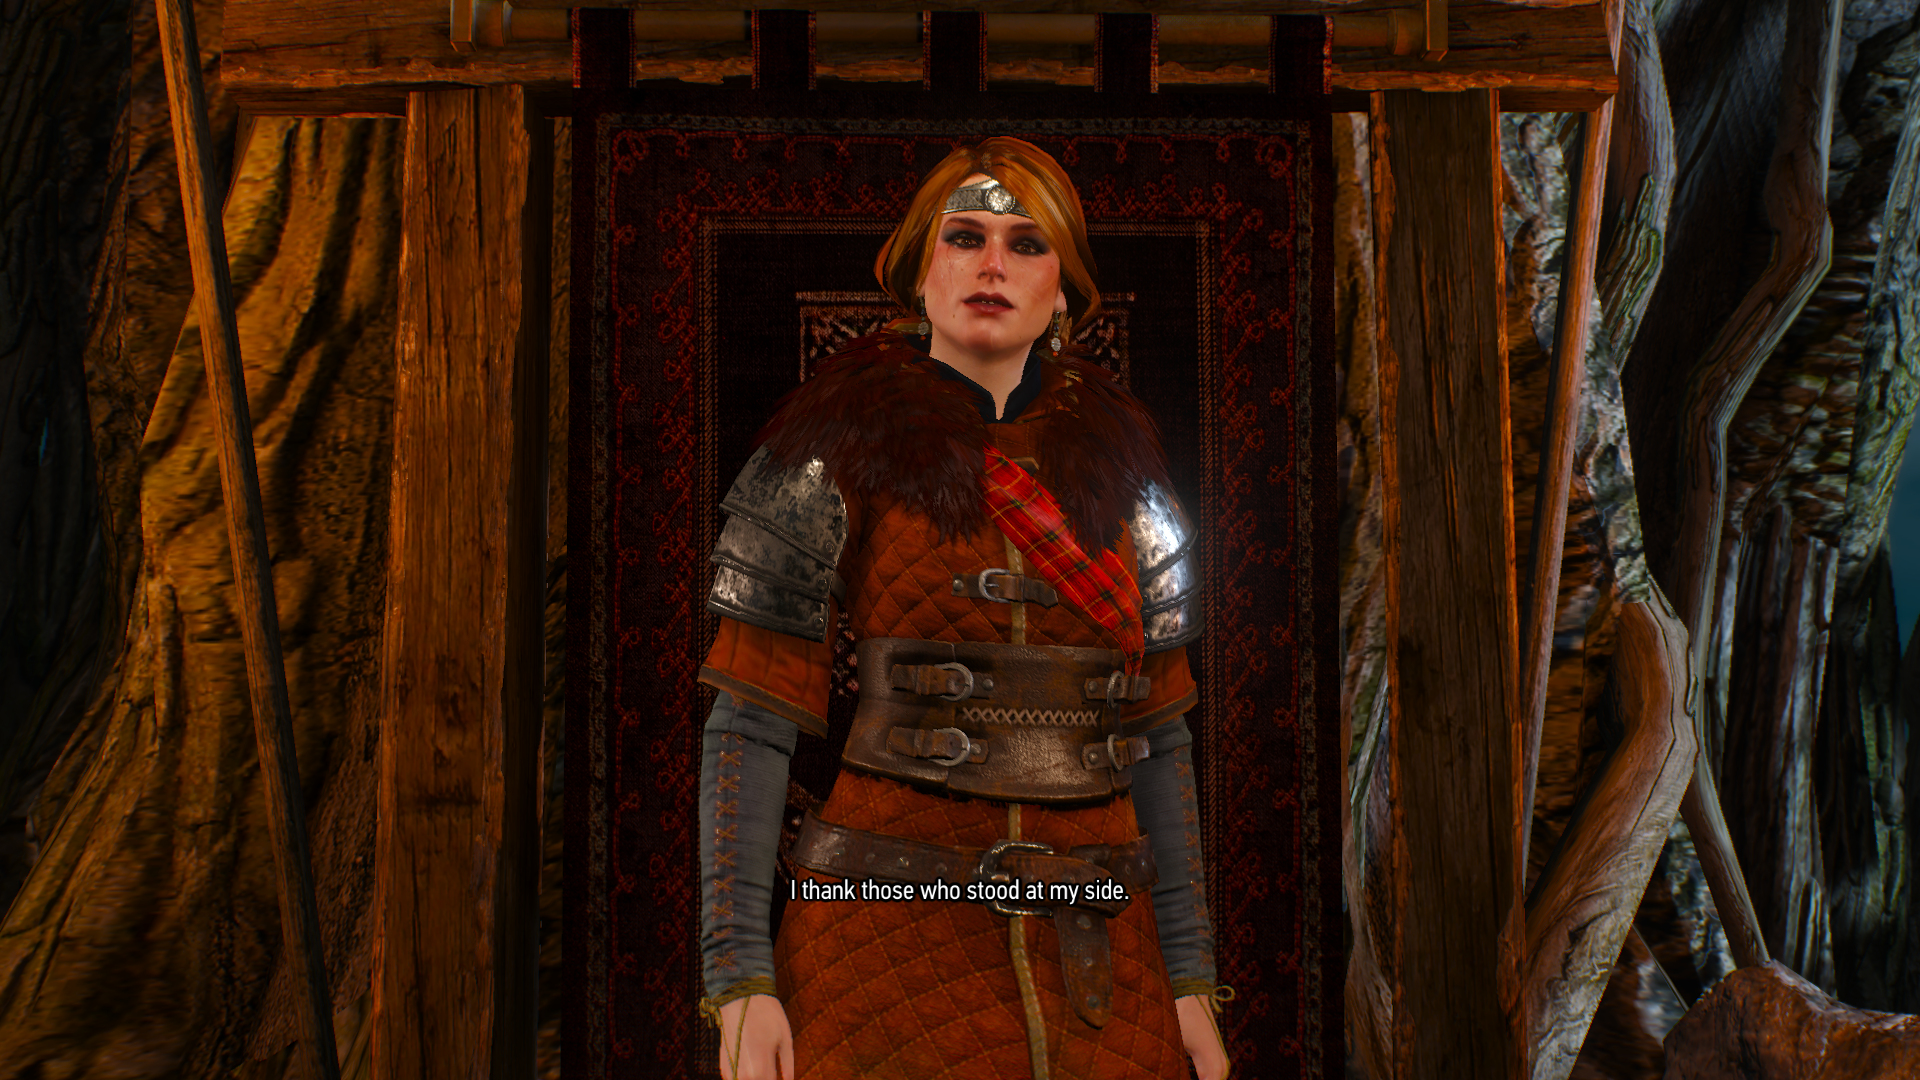 Cerys Queen of Skelliga